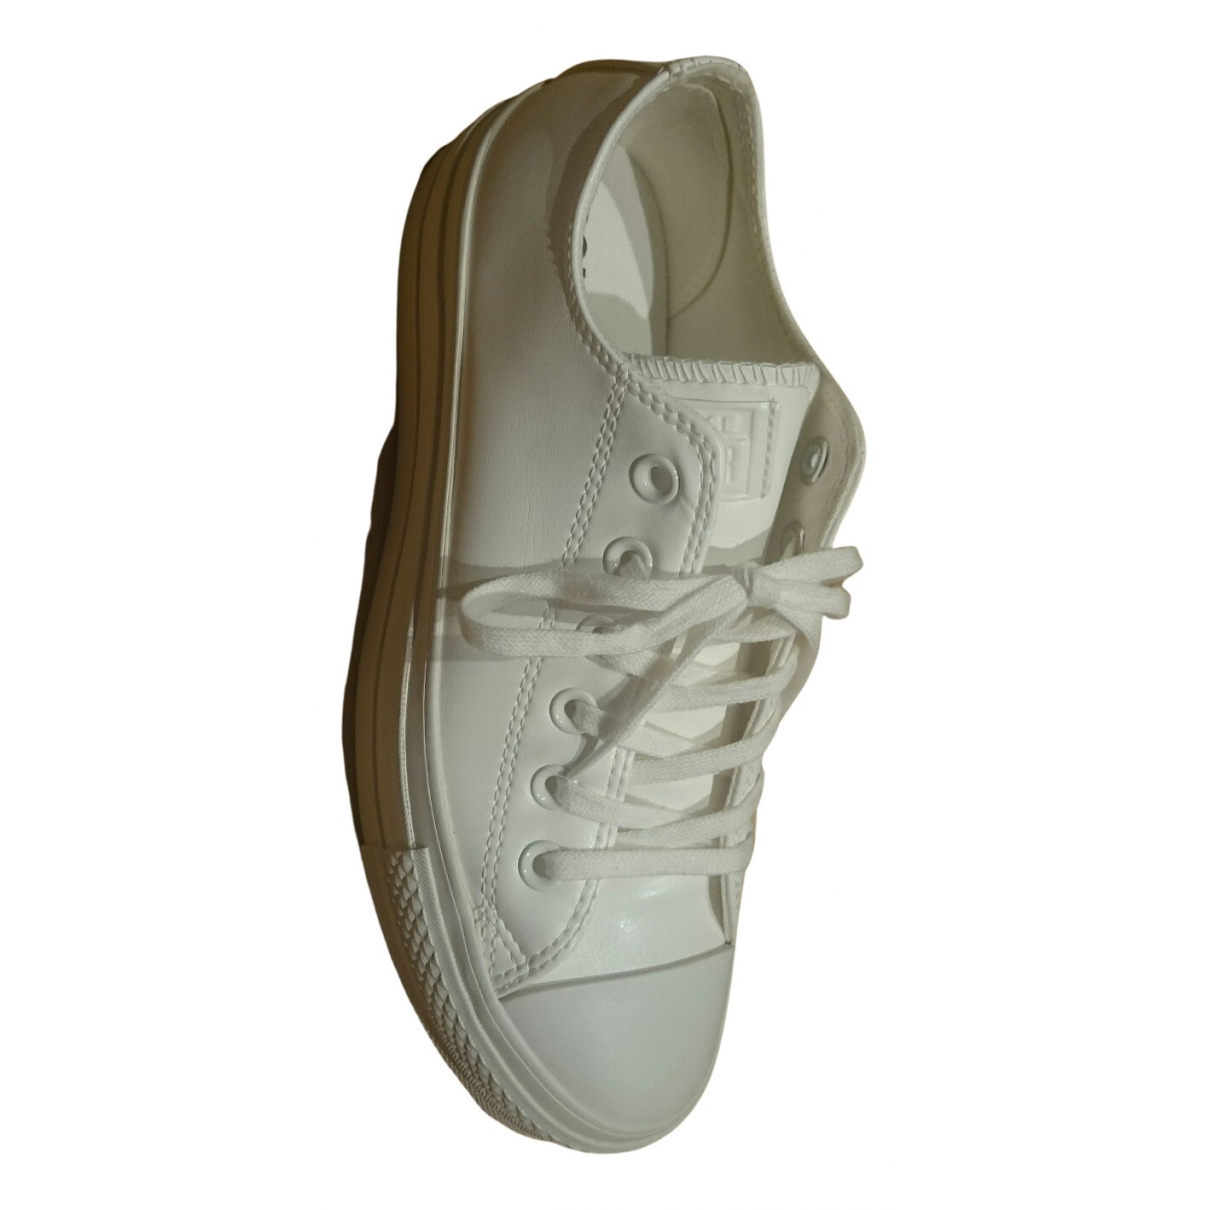 Converse N White Leather Trainers for Women 38 EU